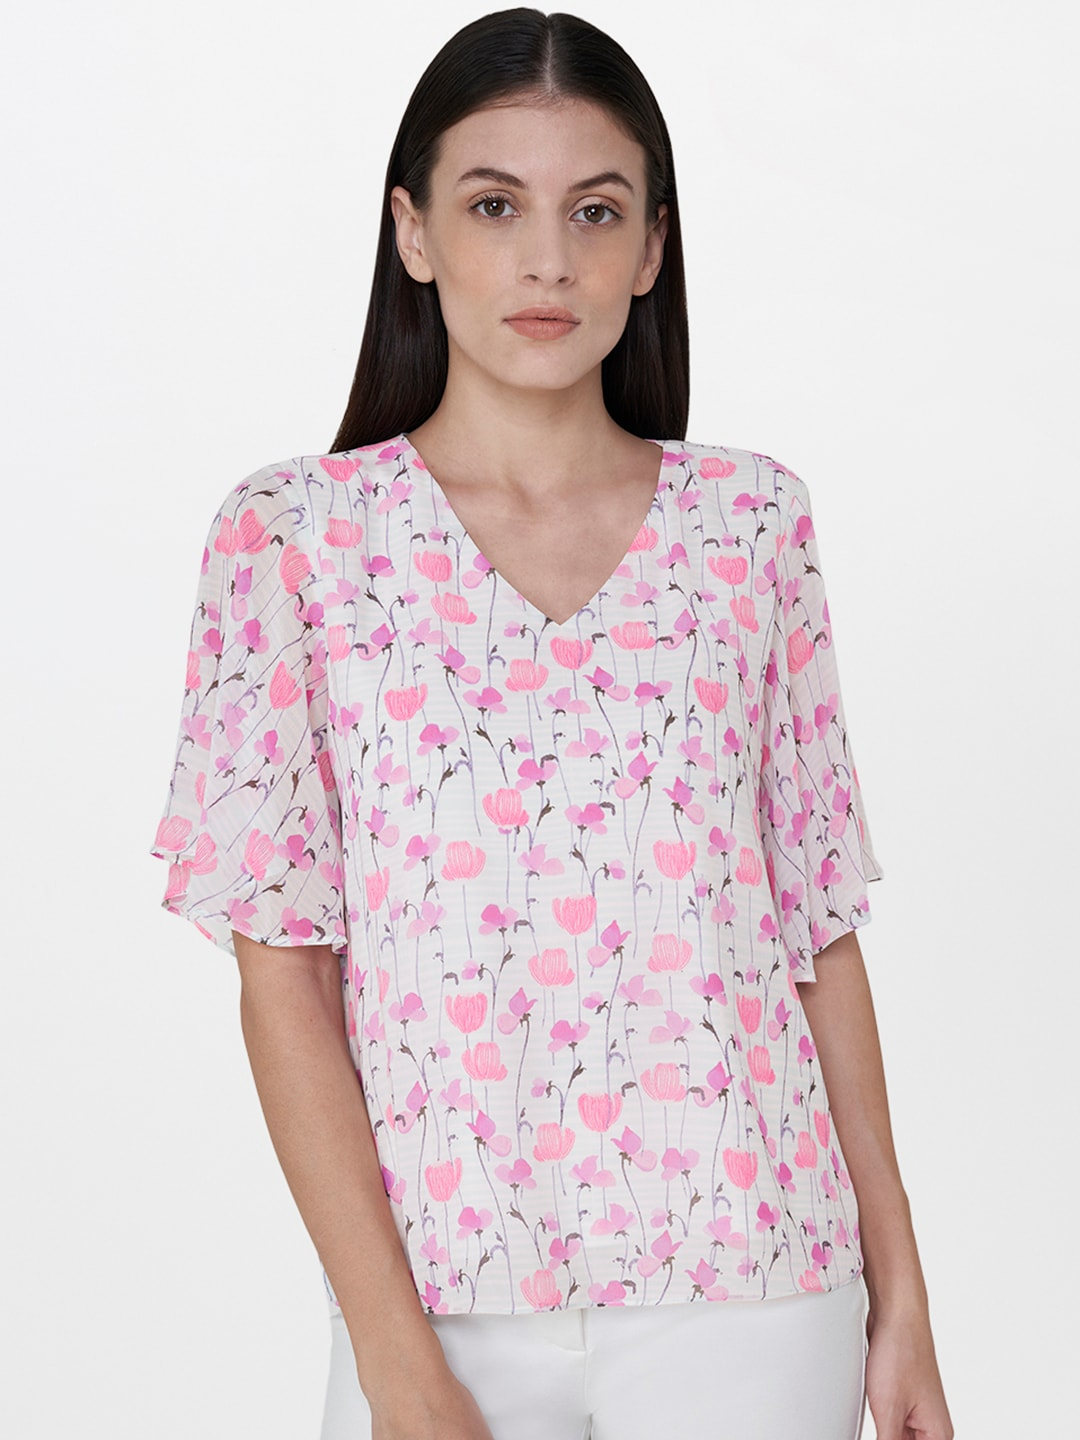 506c894f93a AND Tops - Buy AND Tops   Tshirts For Women Online in India